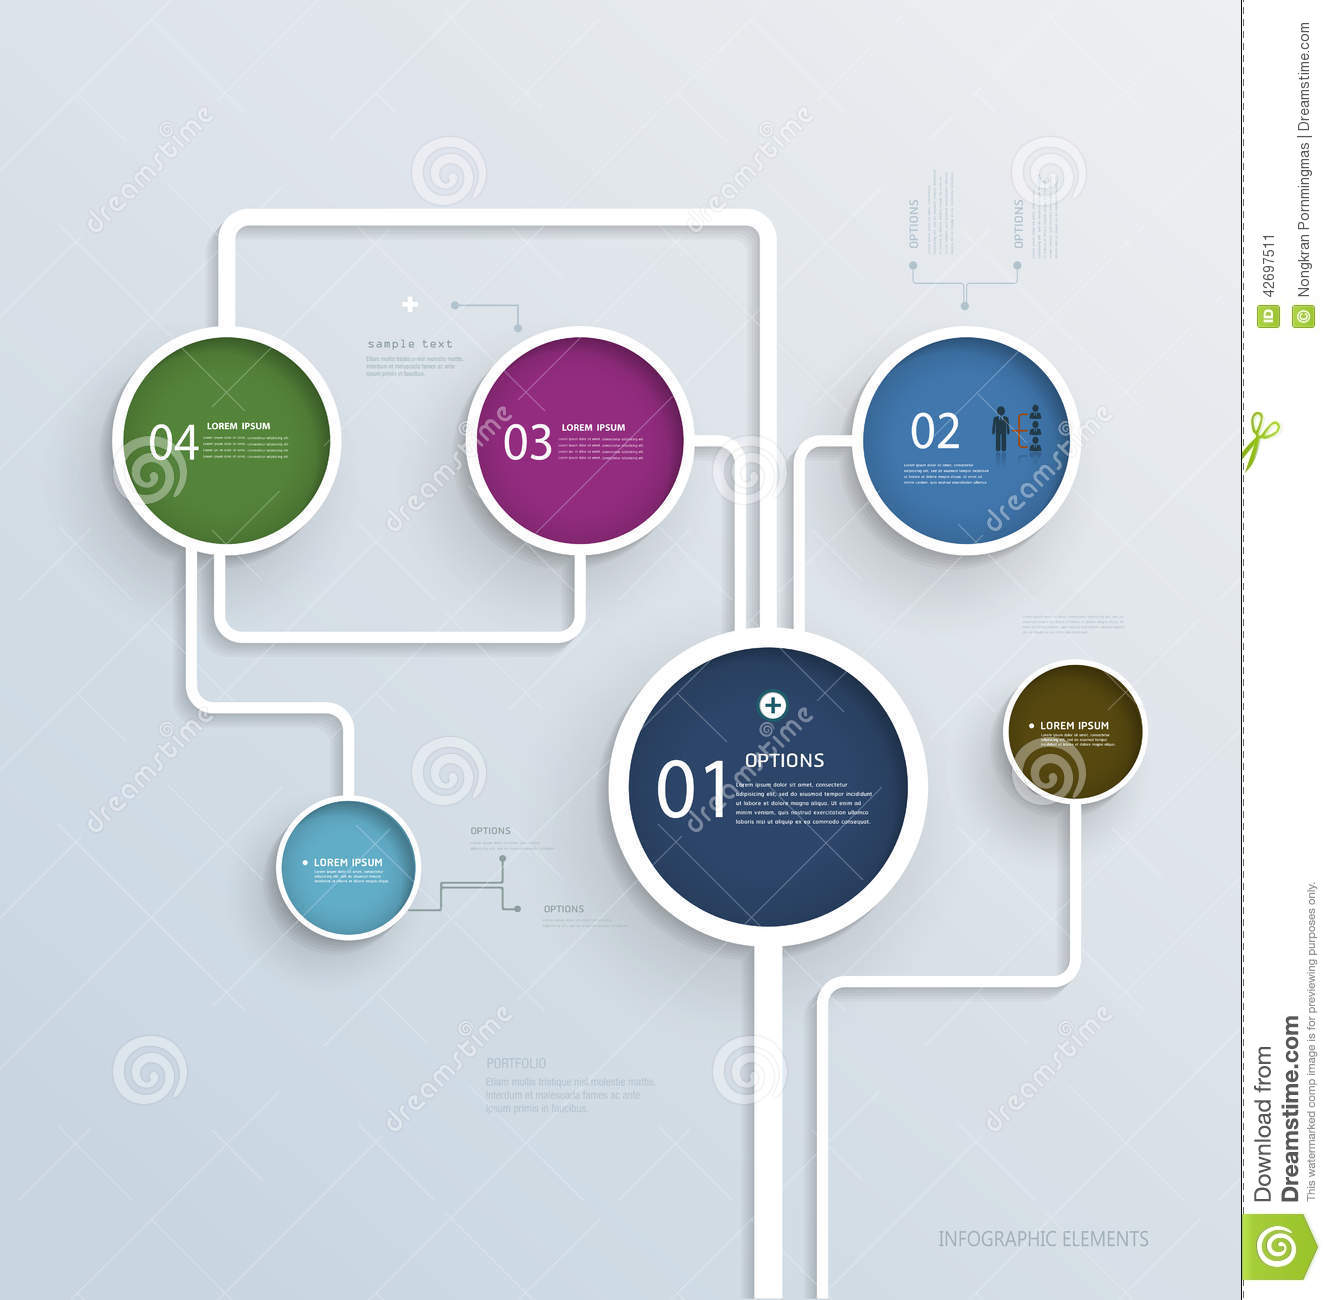 Simple Infographic Elements Design Template